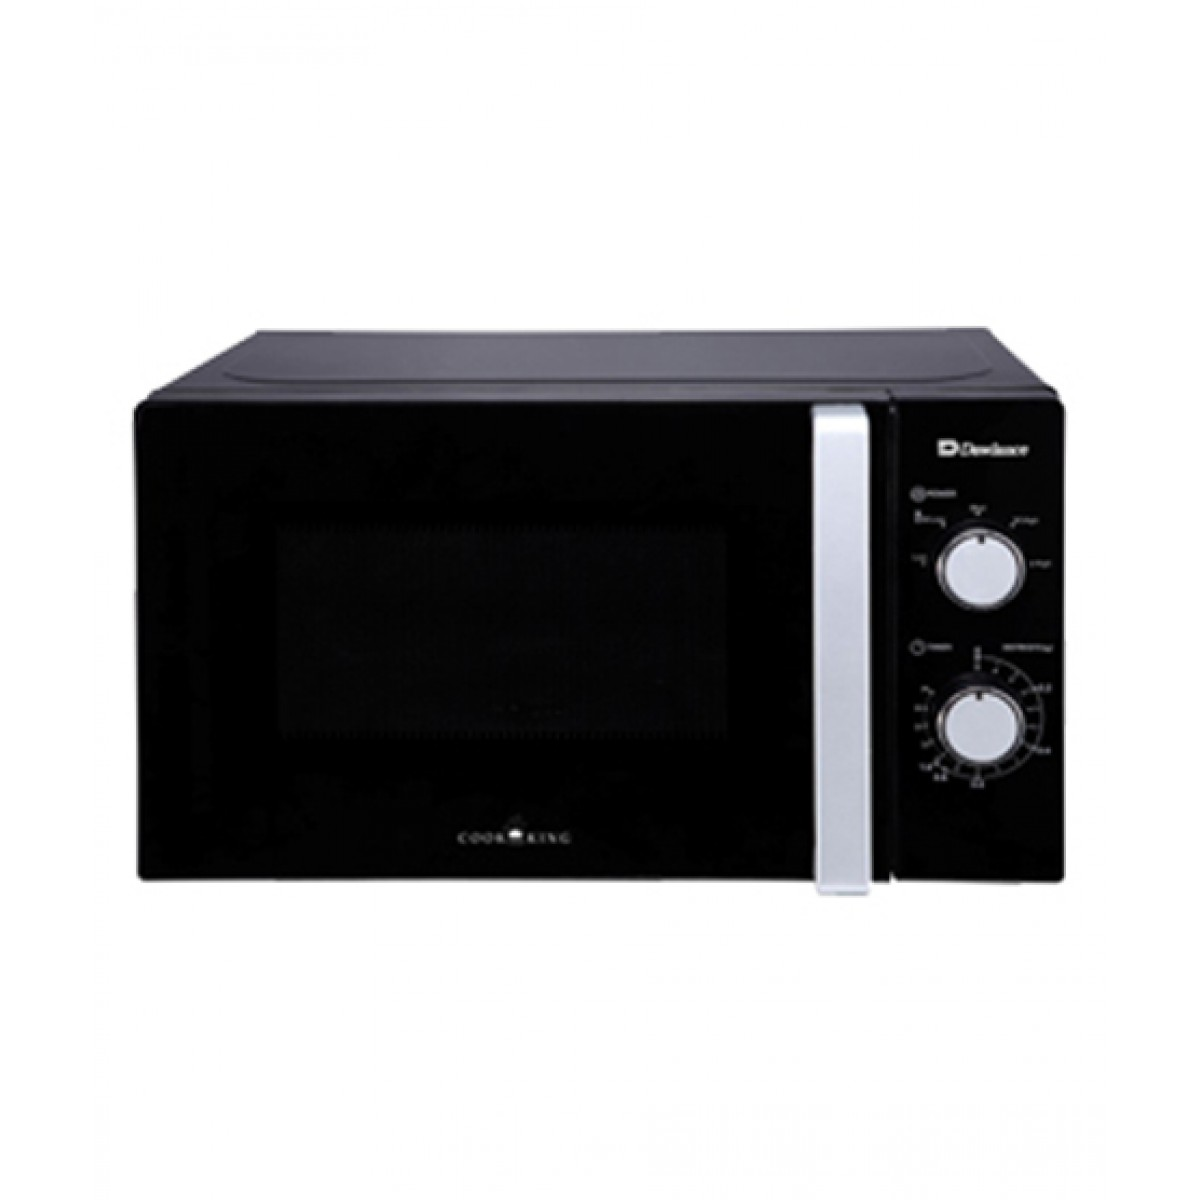 Dawlance Cooking Series Microwave Oven 20 Ltr